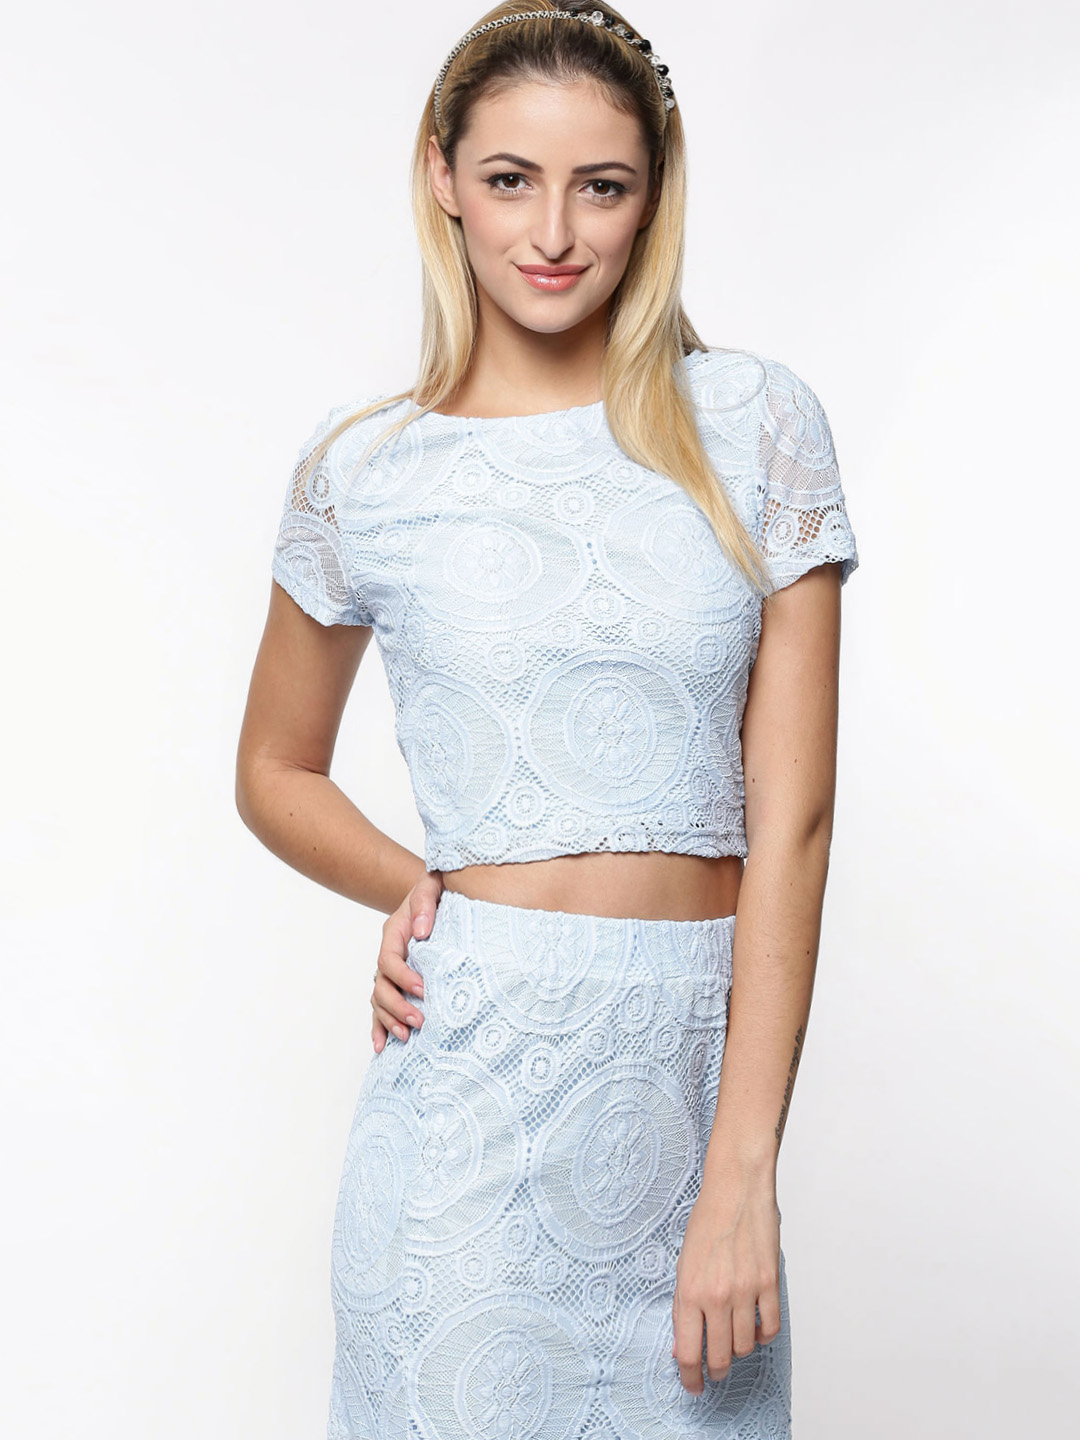 Girls On Film BABY BLUE Lace Overlay Crop Top 1